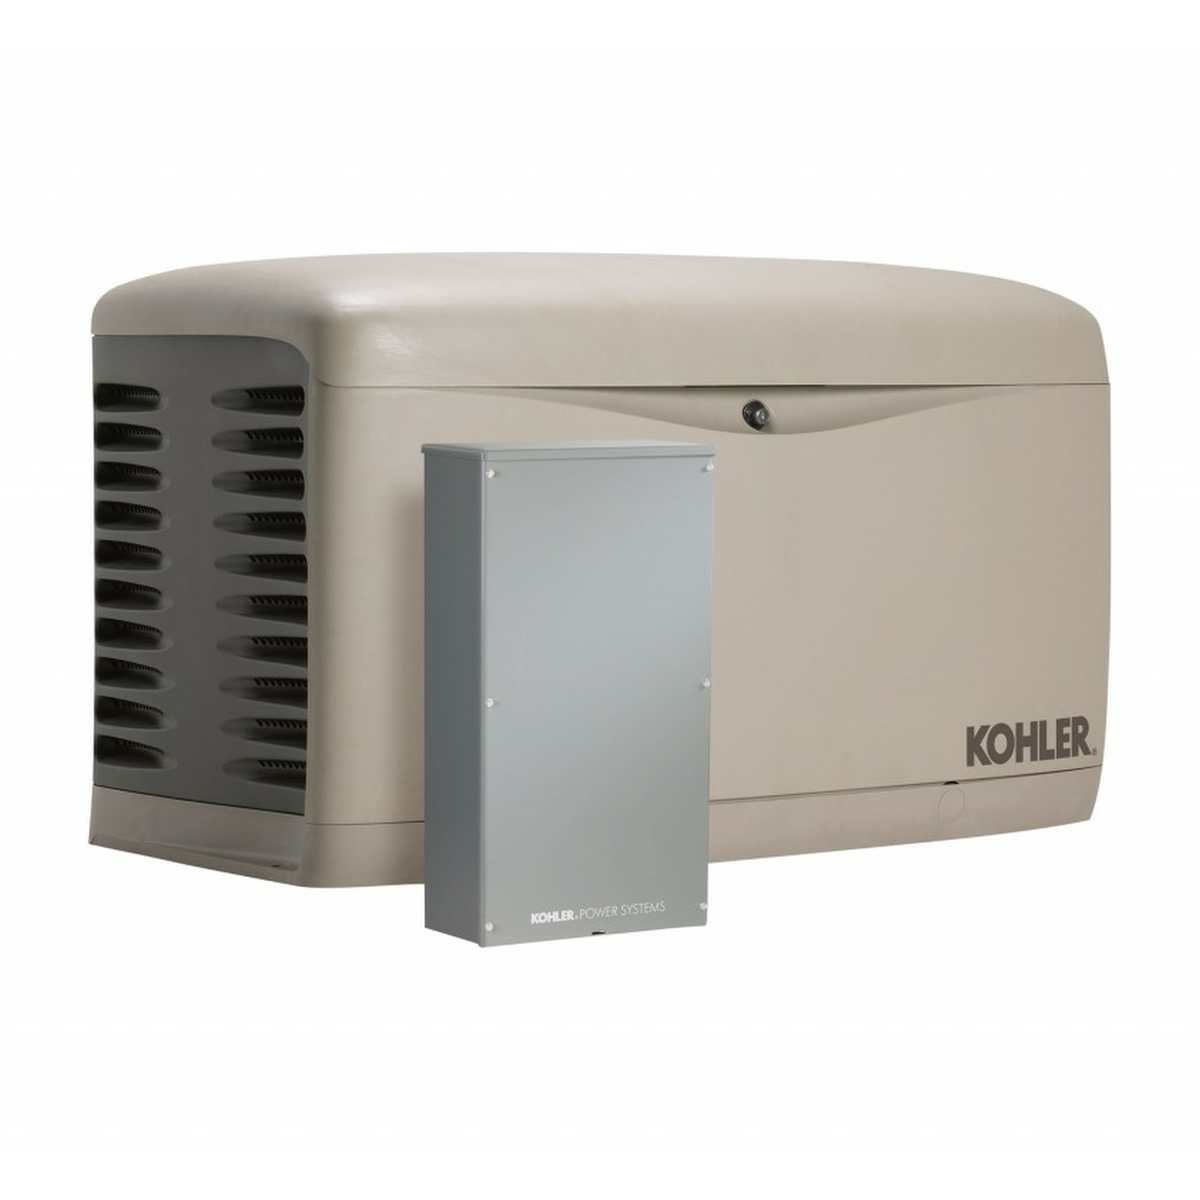 kohler 20rescl 100lc16 20kw generator with 100a 16 circuit transfer switch 3 Phase Generator Wiring Diagram